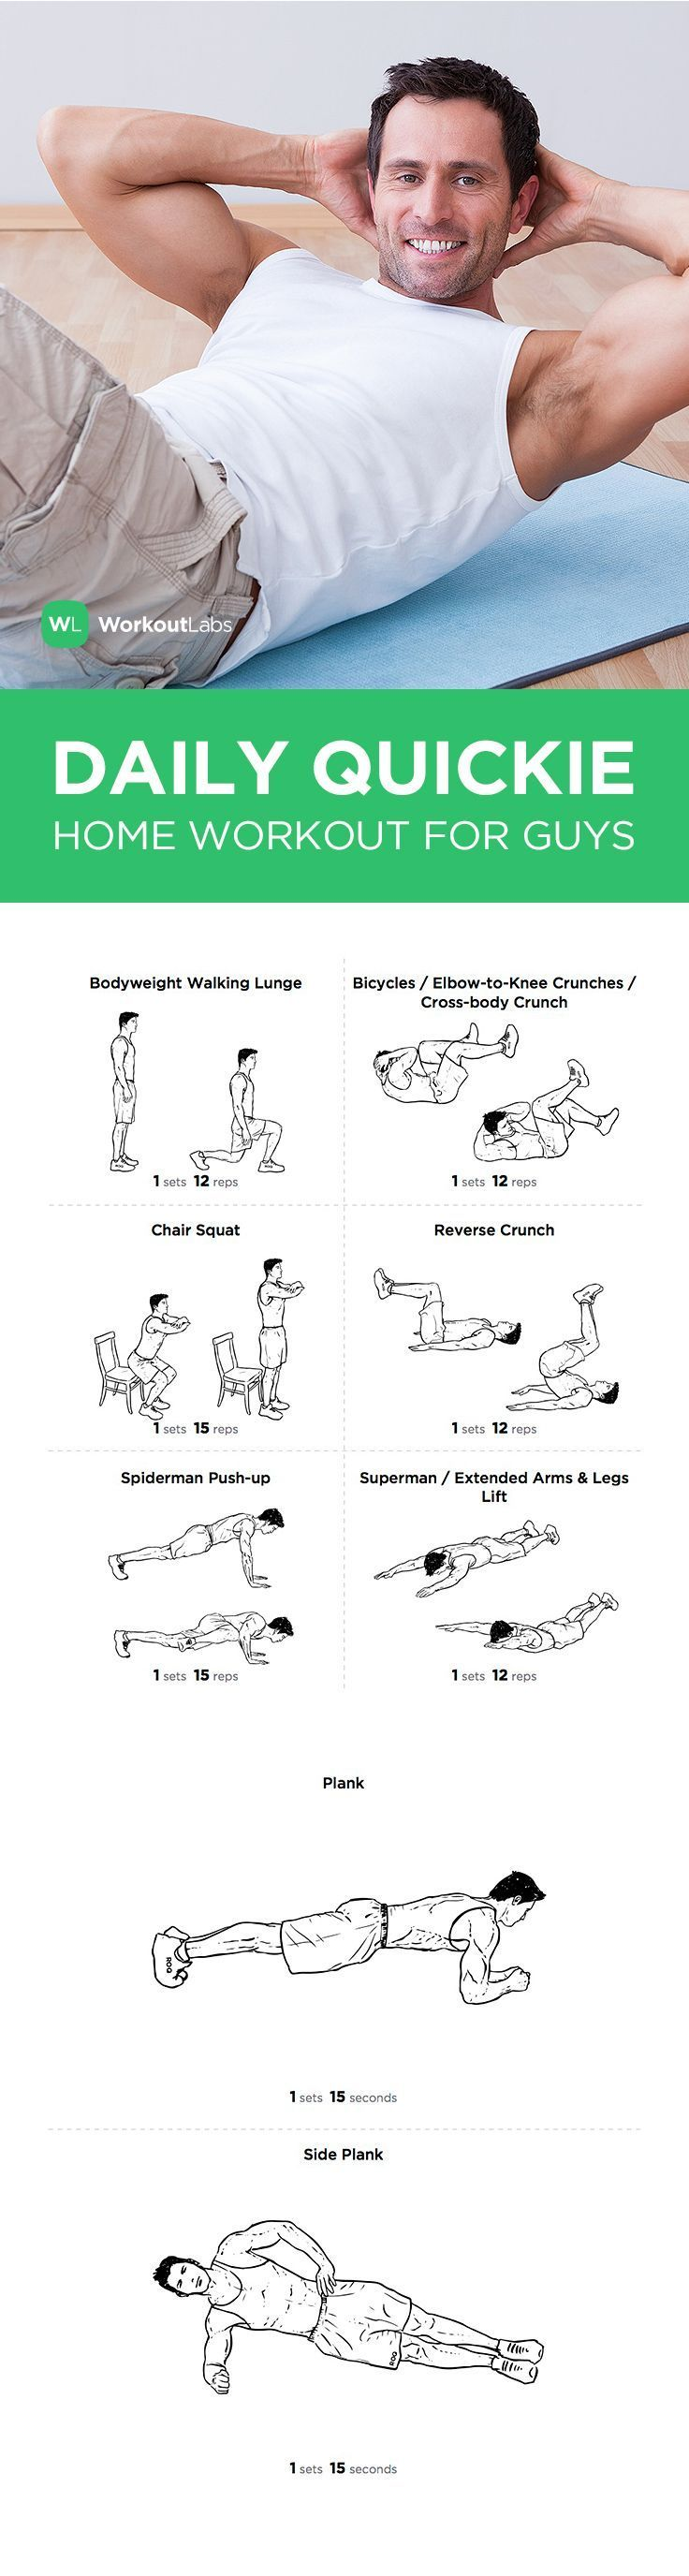 Visit http://WorkoutLabs.com/... for a FREE PDF of this Daily Quickie Essential…